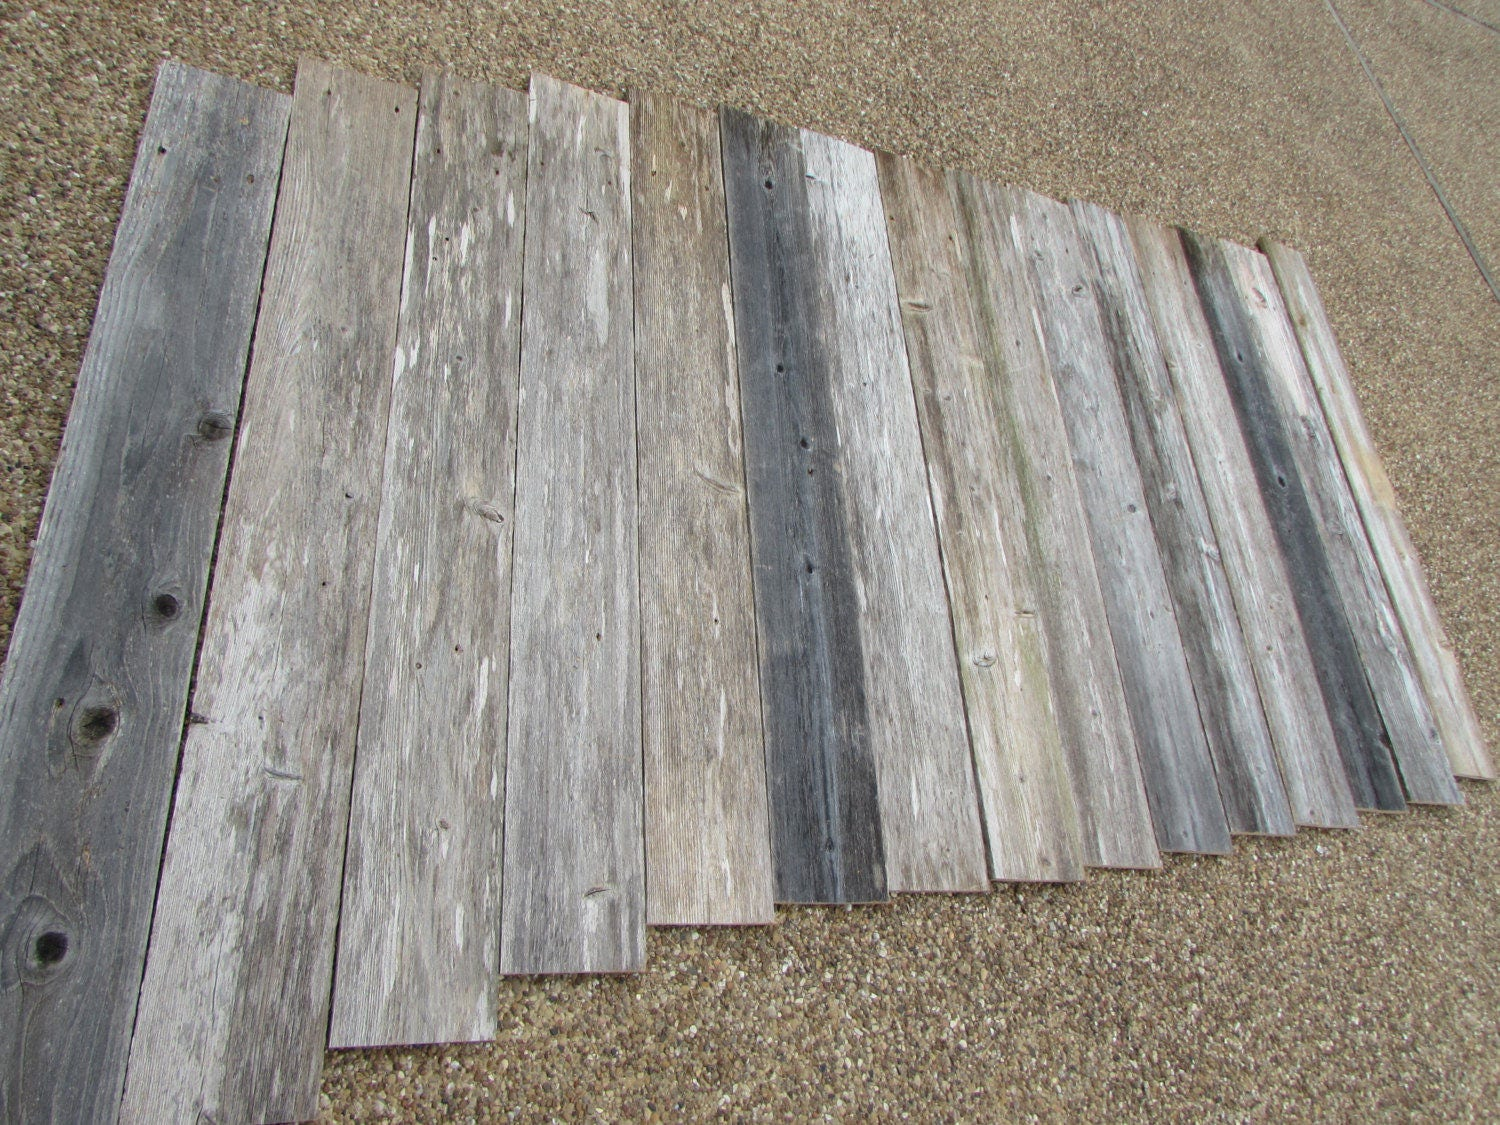 Reclaimed Old Fence Wood Boards for Accent Wall 8 Fence Boards